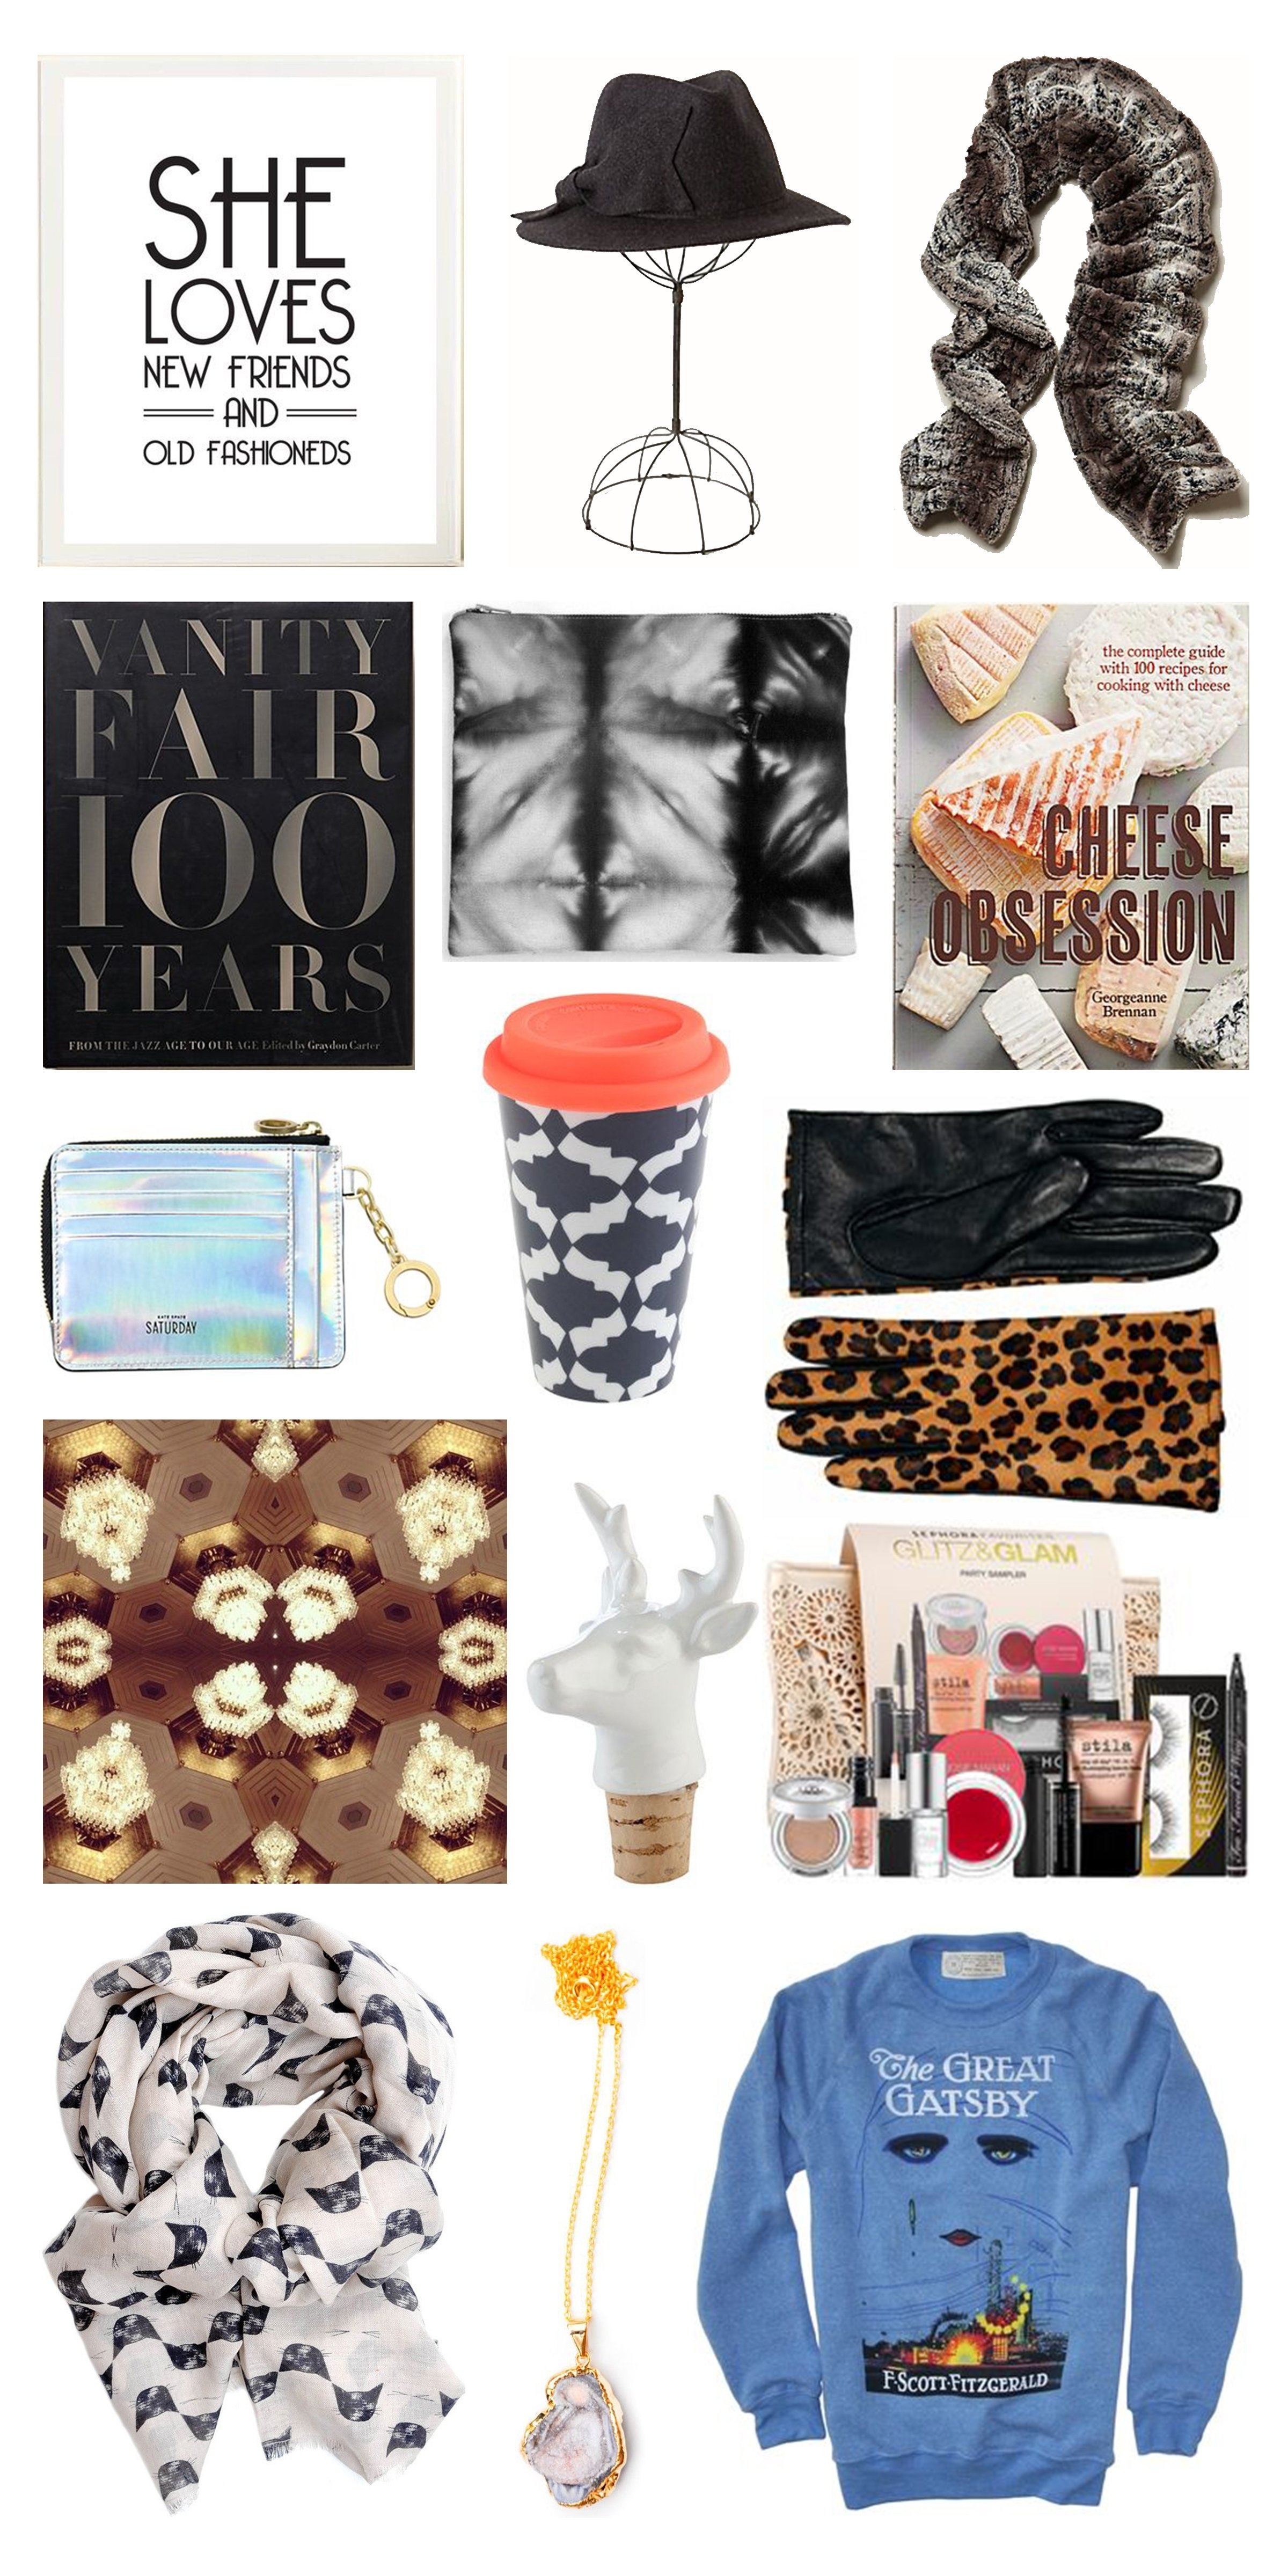 10 Lovable Christmas Present Ideas For Sister dainty sister gift maid together with honor sisters hrjtjldl gifts 2020